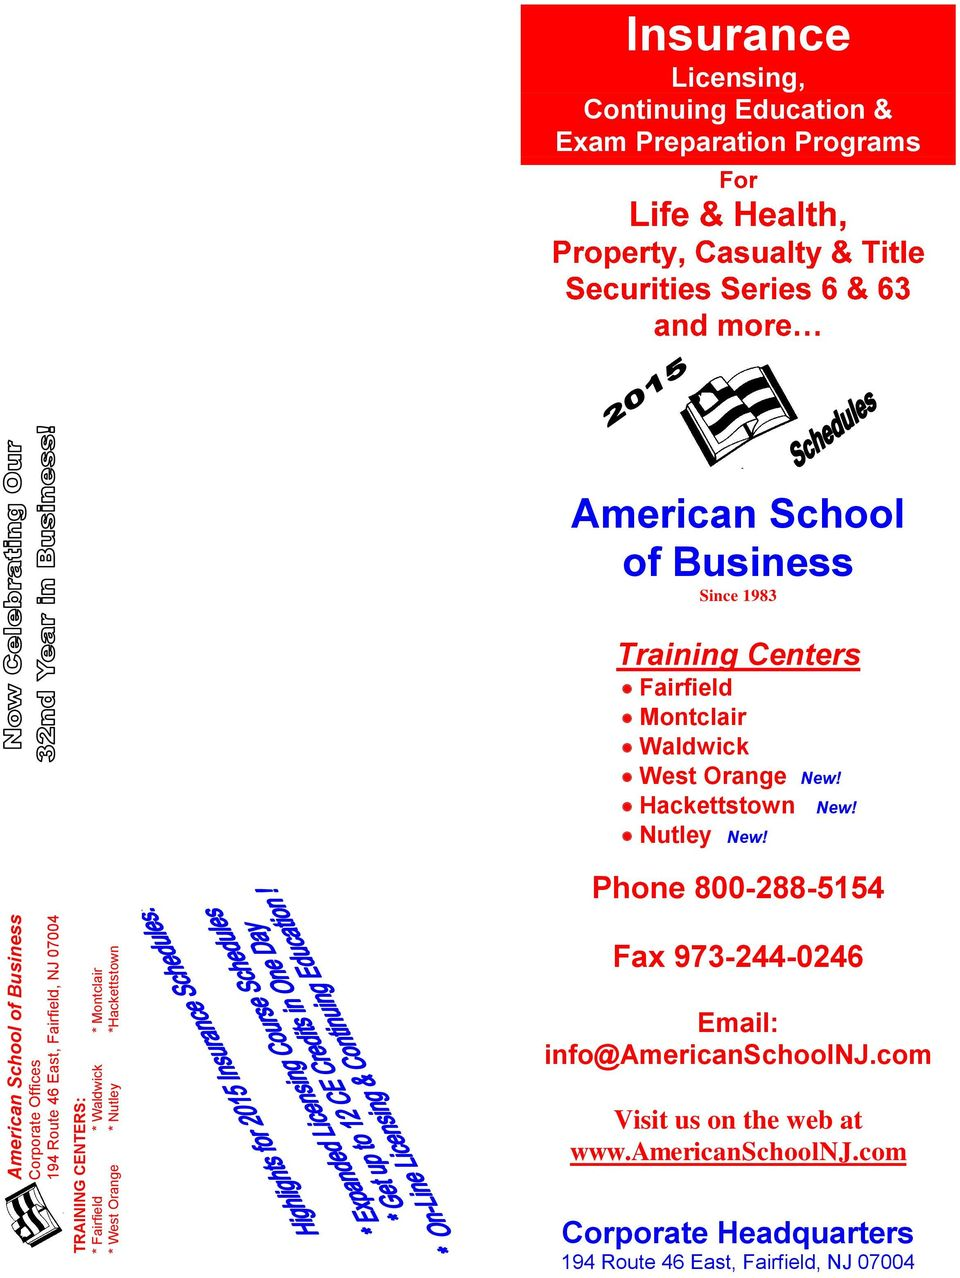 Since 1983 Training Centers Fairfield Montclair Waldwick West Orange New! Hackettstown New! Nutley New!